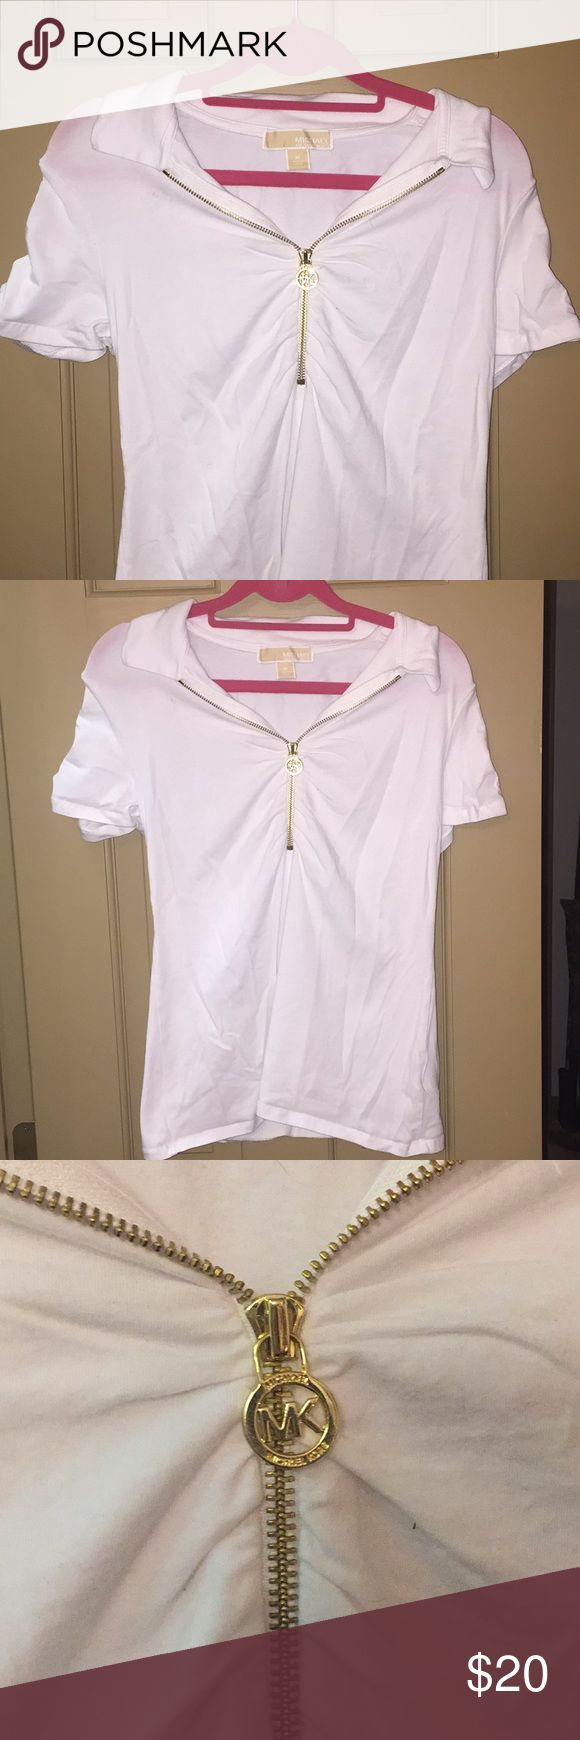 Michael Kors Zip Up Gold Accented White Tshirt Only worn once! Very cute if you're trying to dress up your outfit a little more. Michael Kors Tops Tees - Short Sleeve